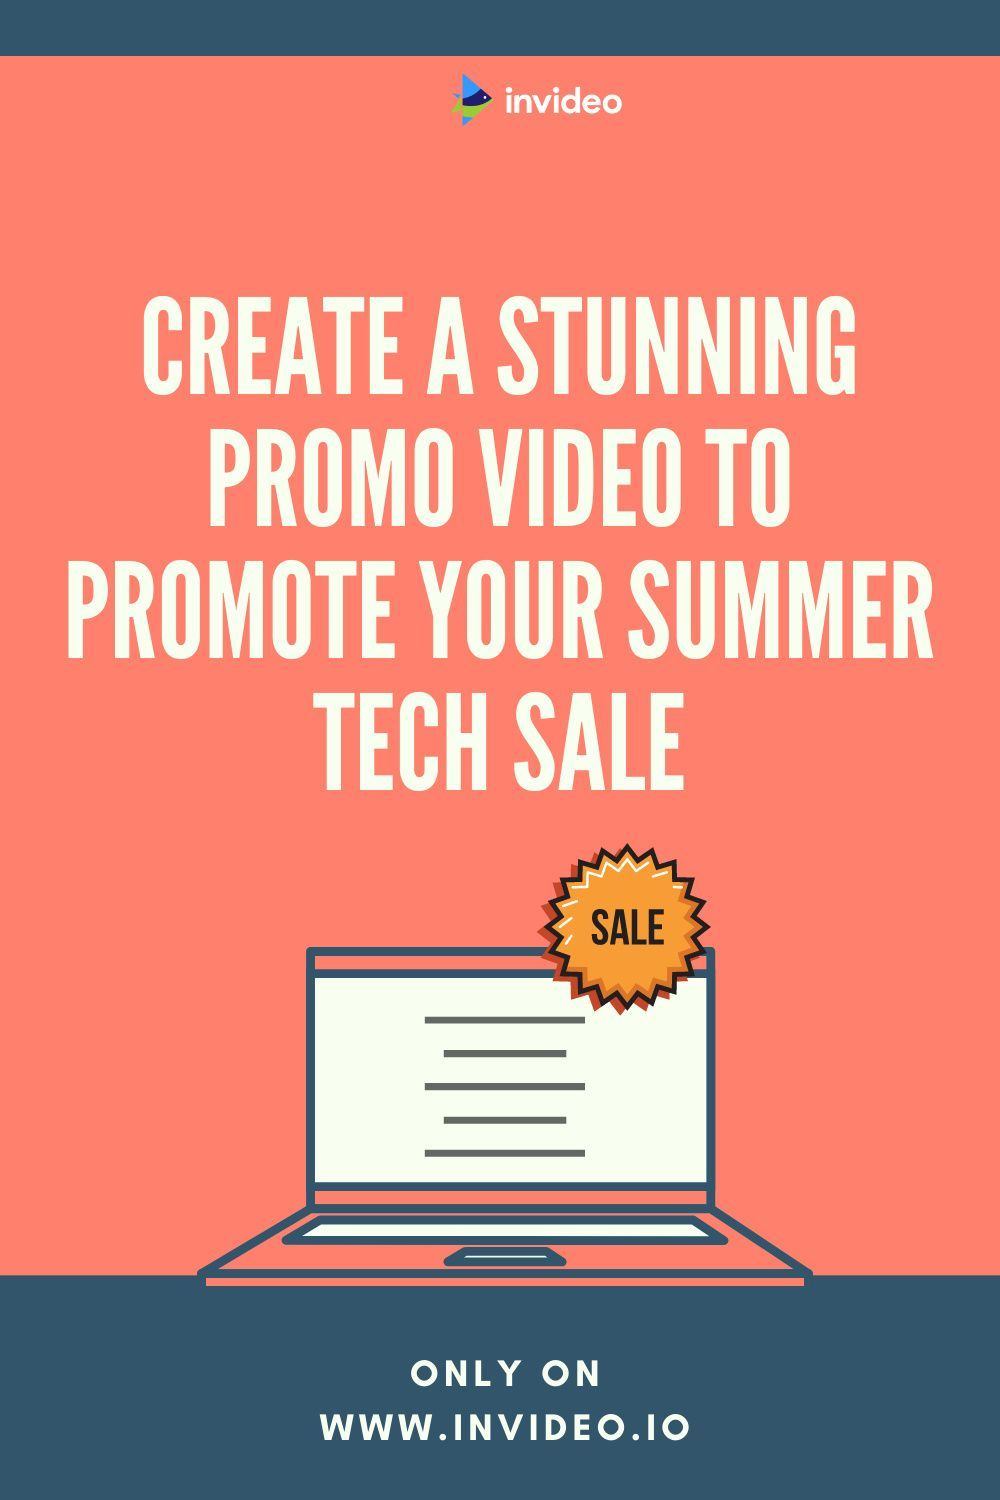 Sales Ad Video Template Online Video Editor Promo Videos Video Template Video Online